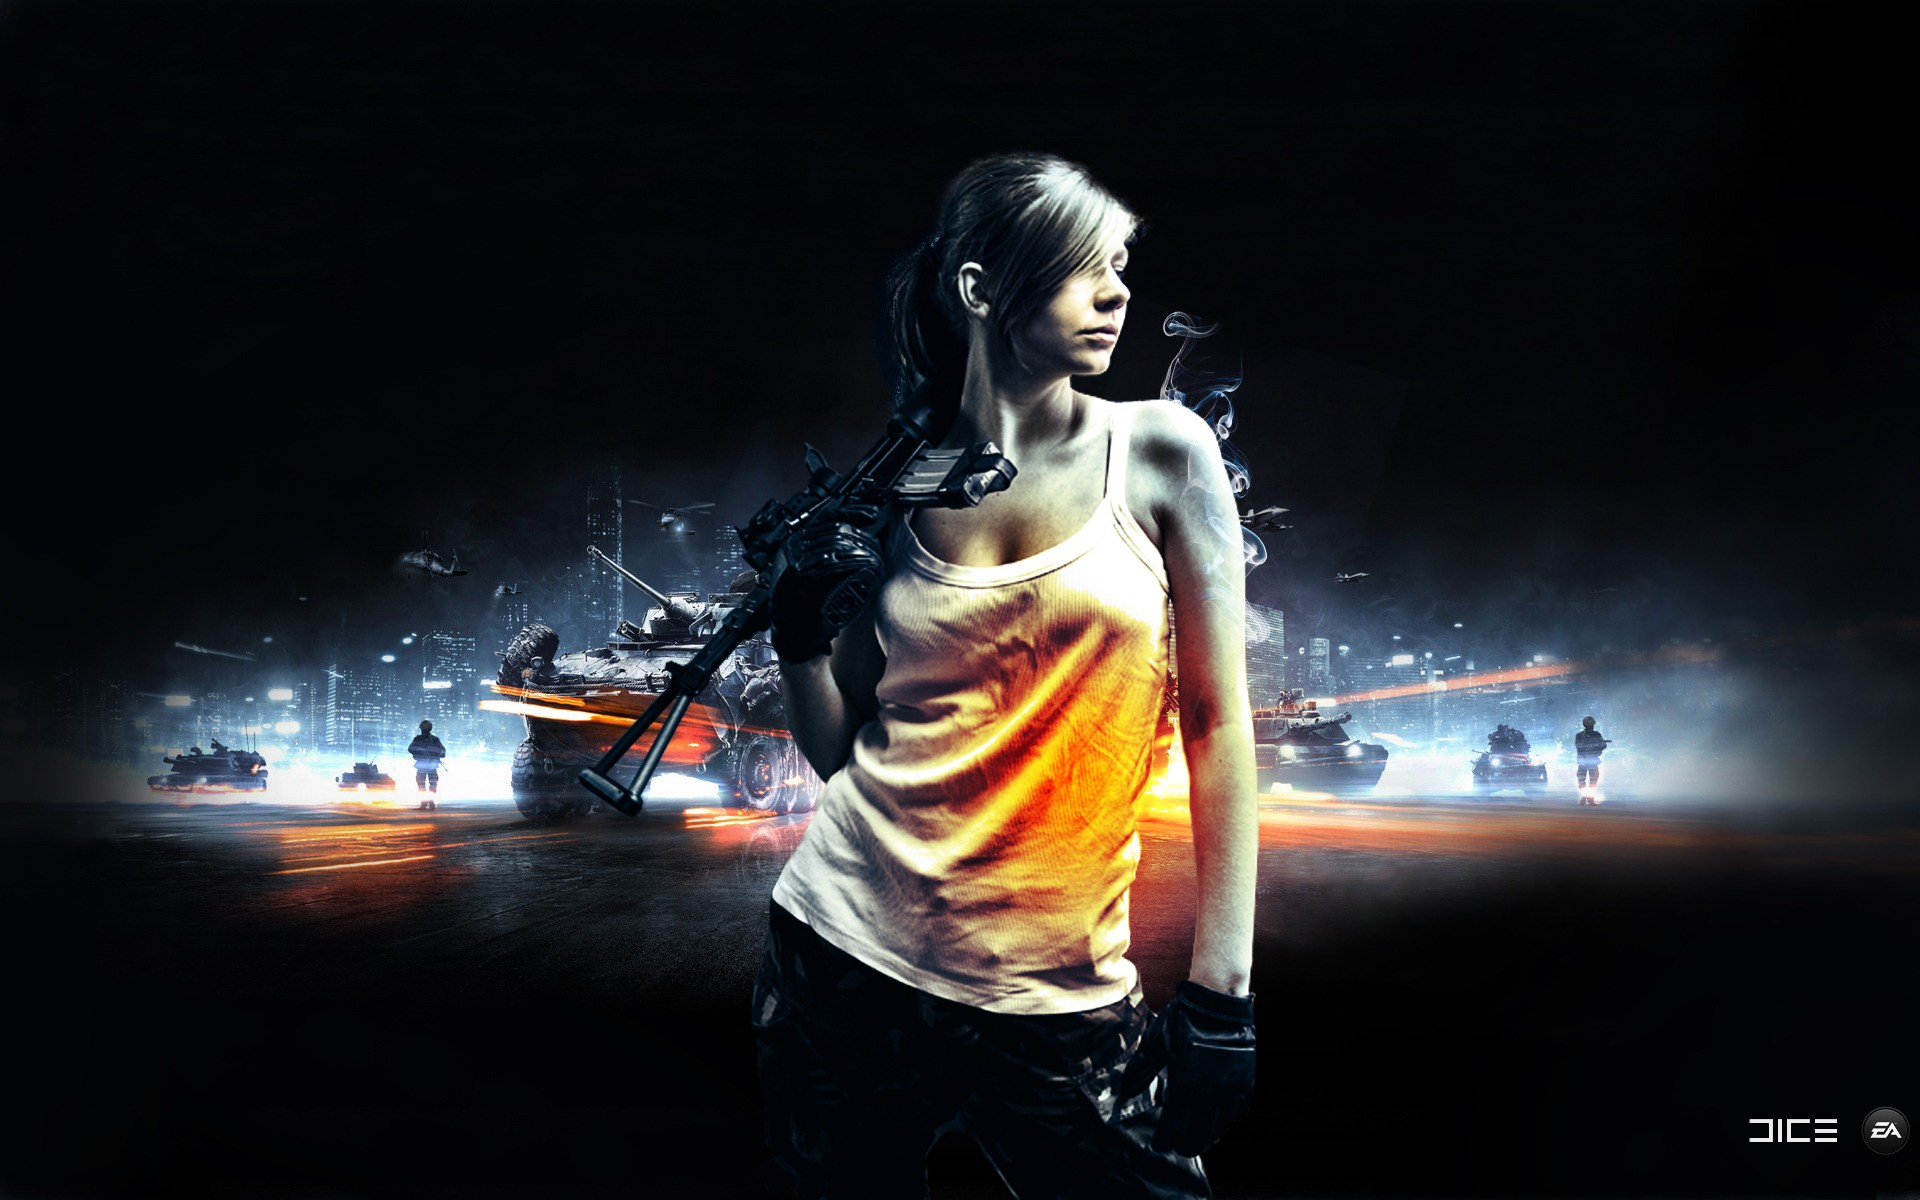 battlefield 3 hd wallpaper | background image | 1920x1200 | id